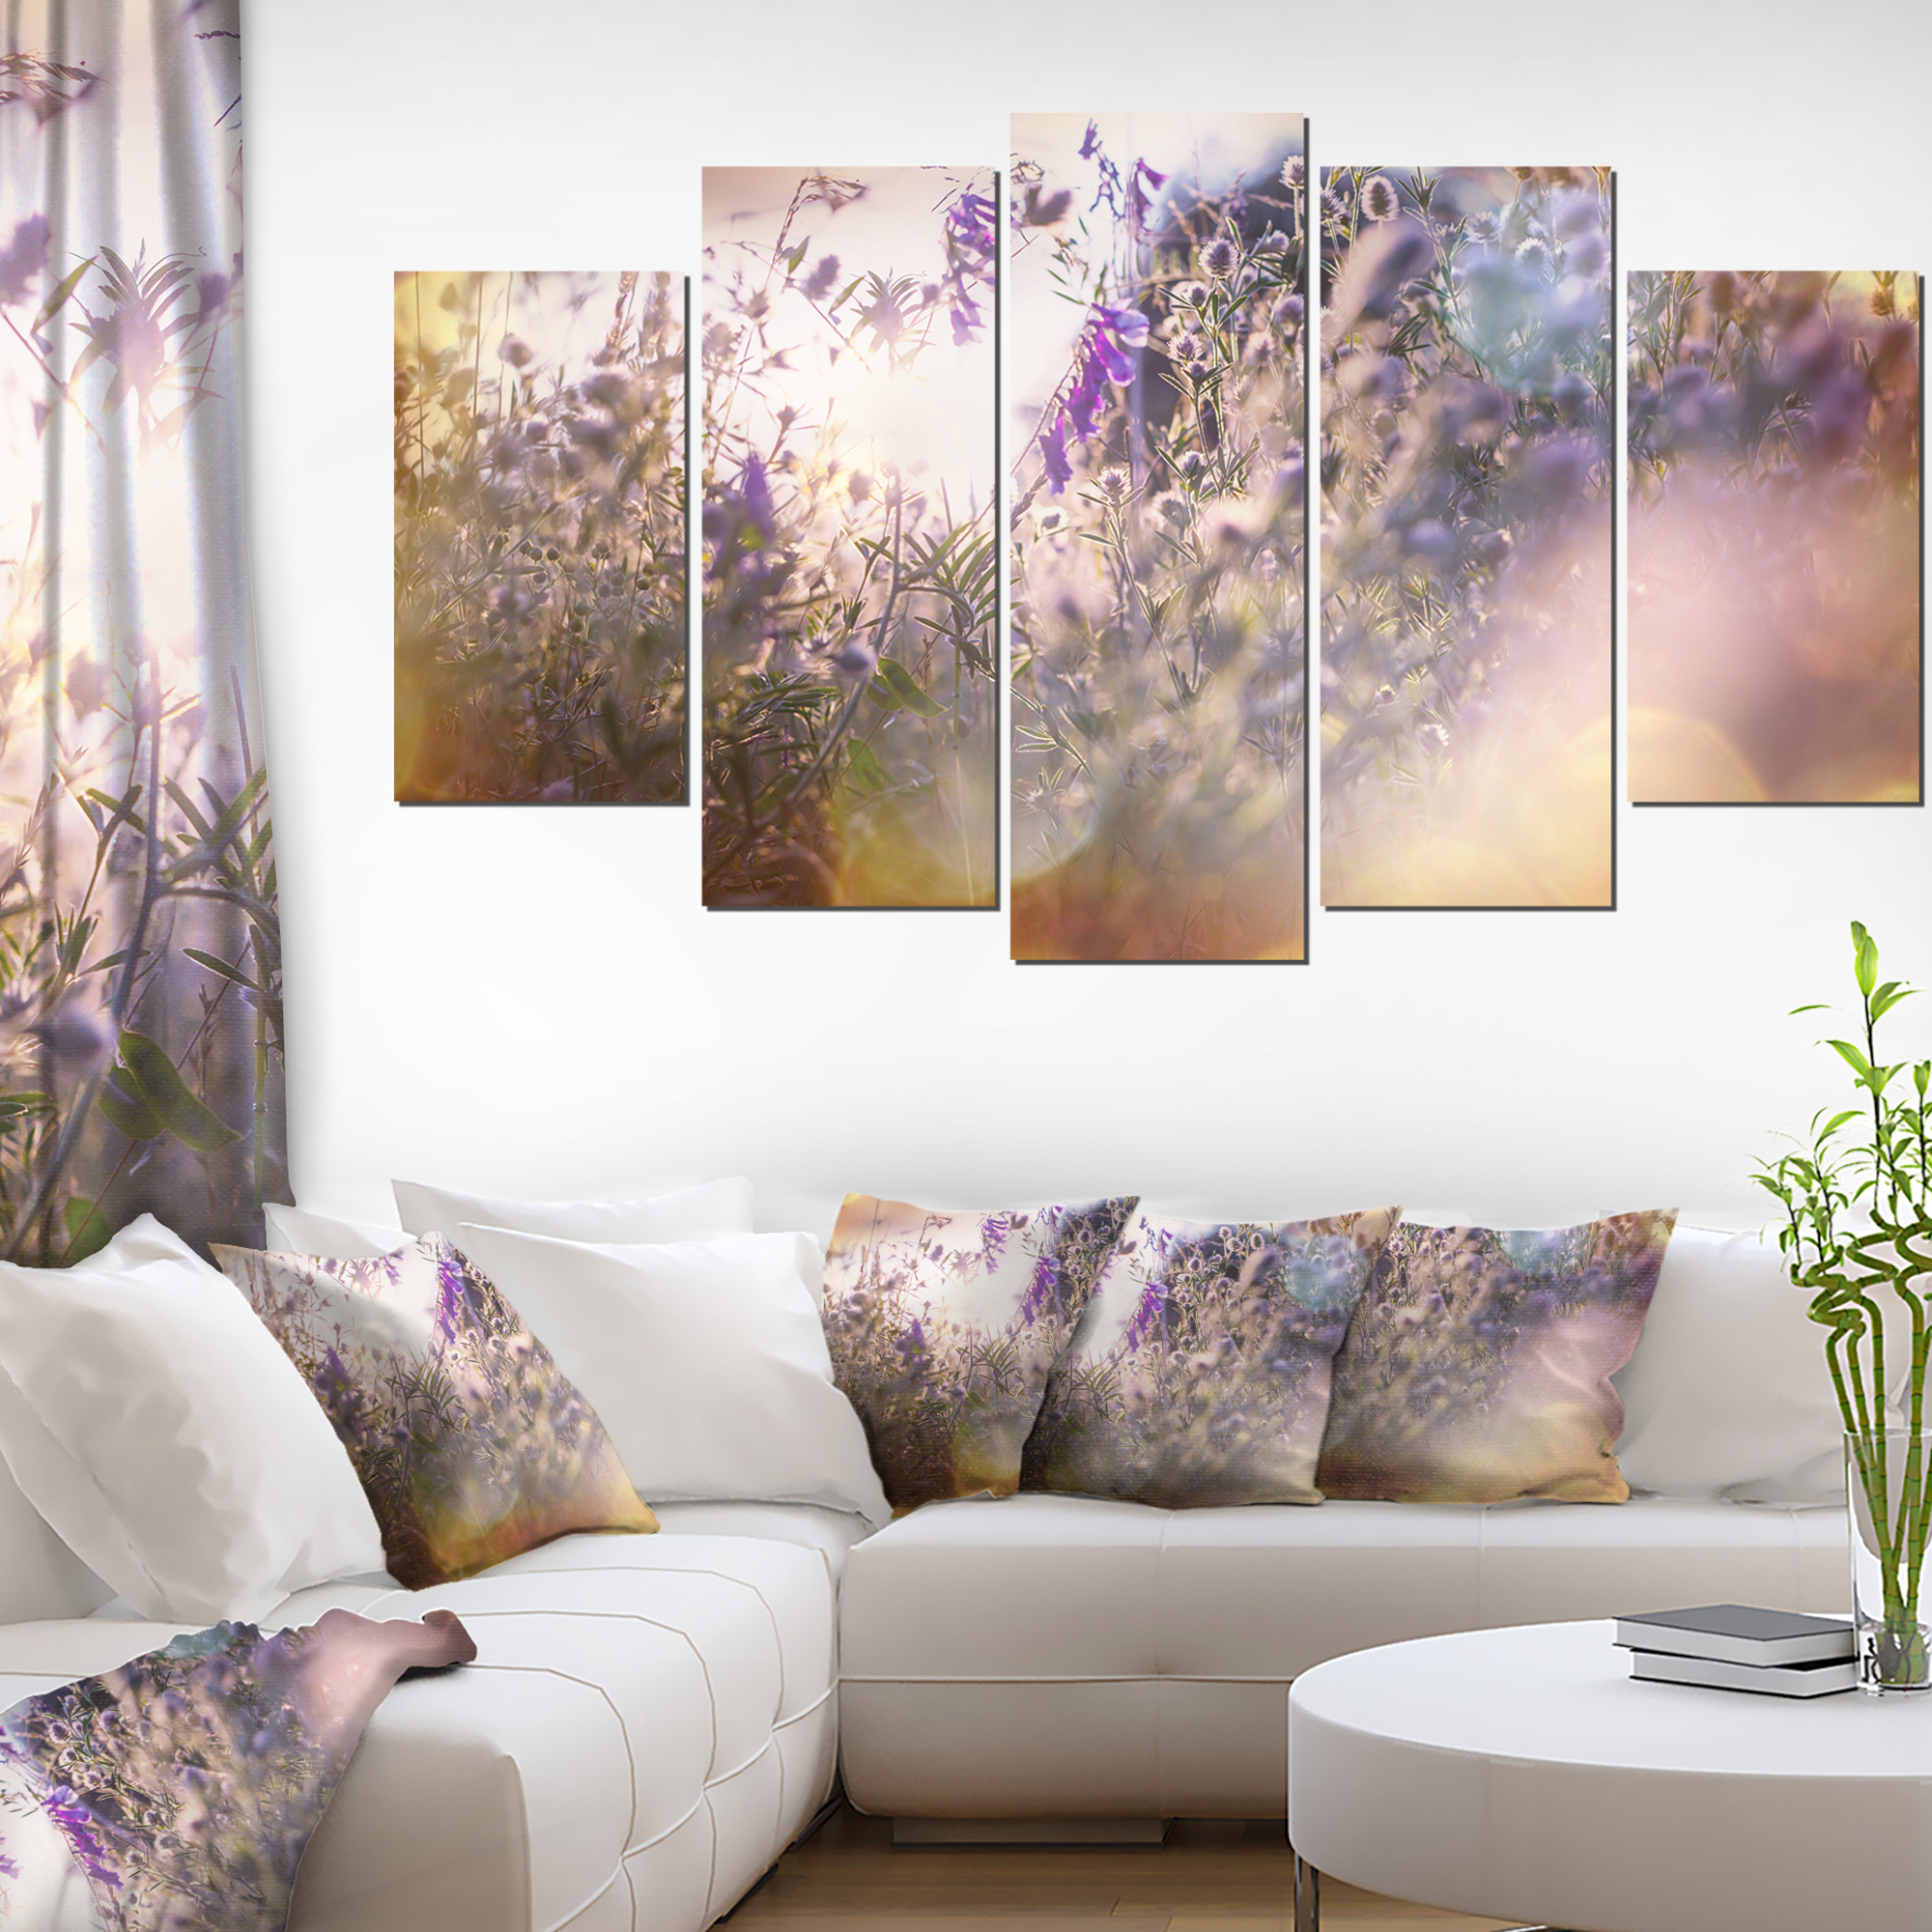 Summer Pasture with Purple Flowers - Extra Large Landscape Canvas Art - image 3 of 3